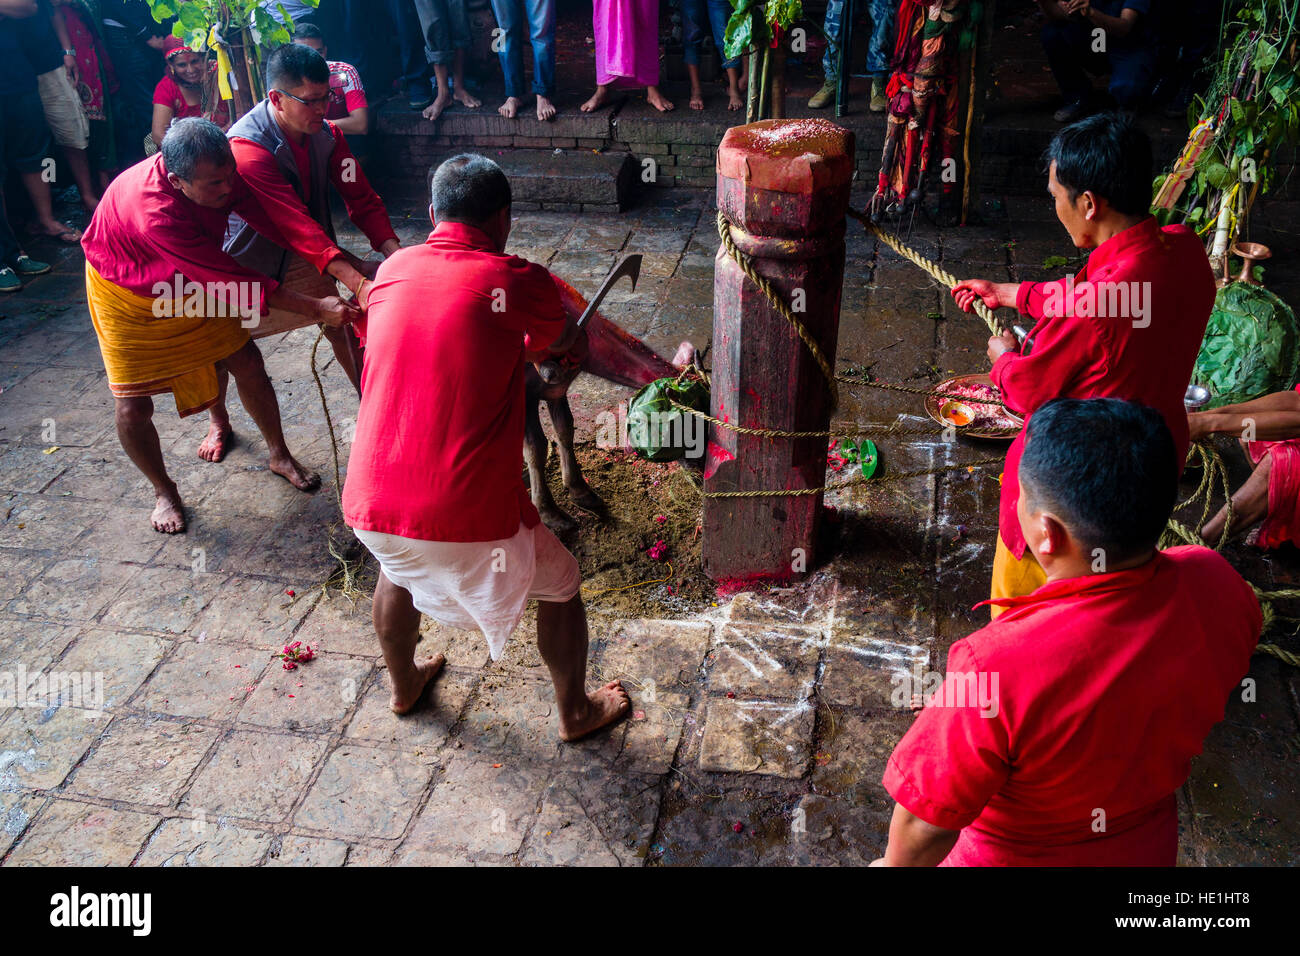 Sacrifice To Gods Stock Photos Sacrifice To Gods Stock Images Alamy